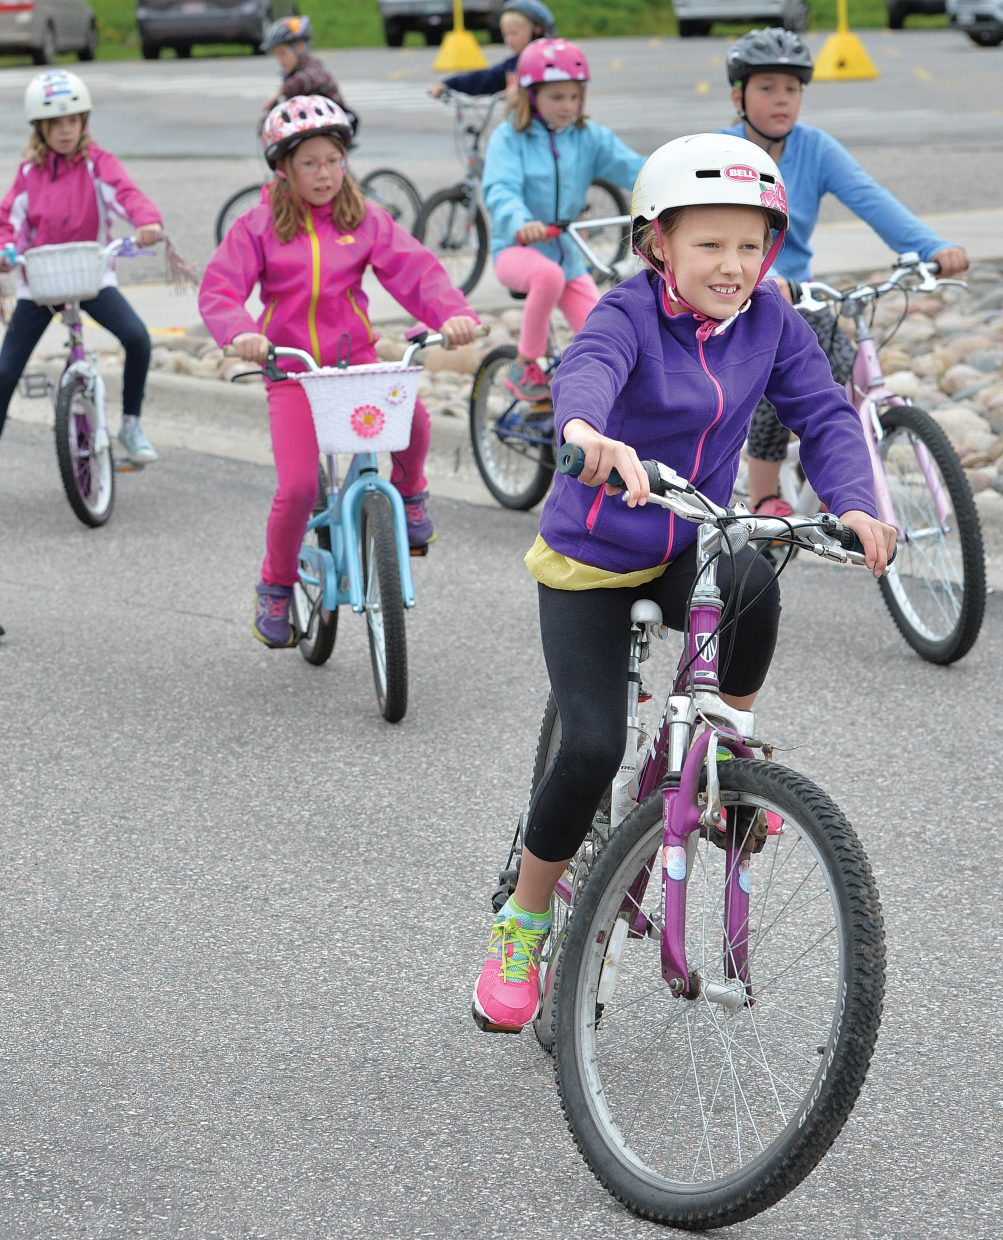 Strawberry Park Elementary School third grader Kaelyn Radway heads to one of several stations at this year's Strawberry Park Bike Rally Friday morning. Volunteers, including a group of Moots, set up a number of stations hoping to remind elementary students about riding safely this spring and summer.